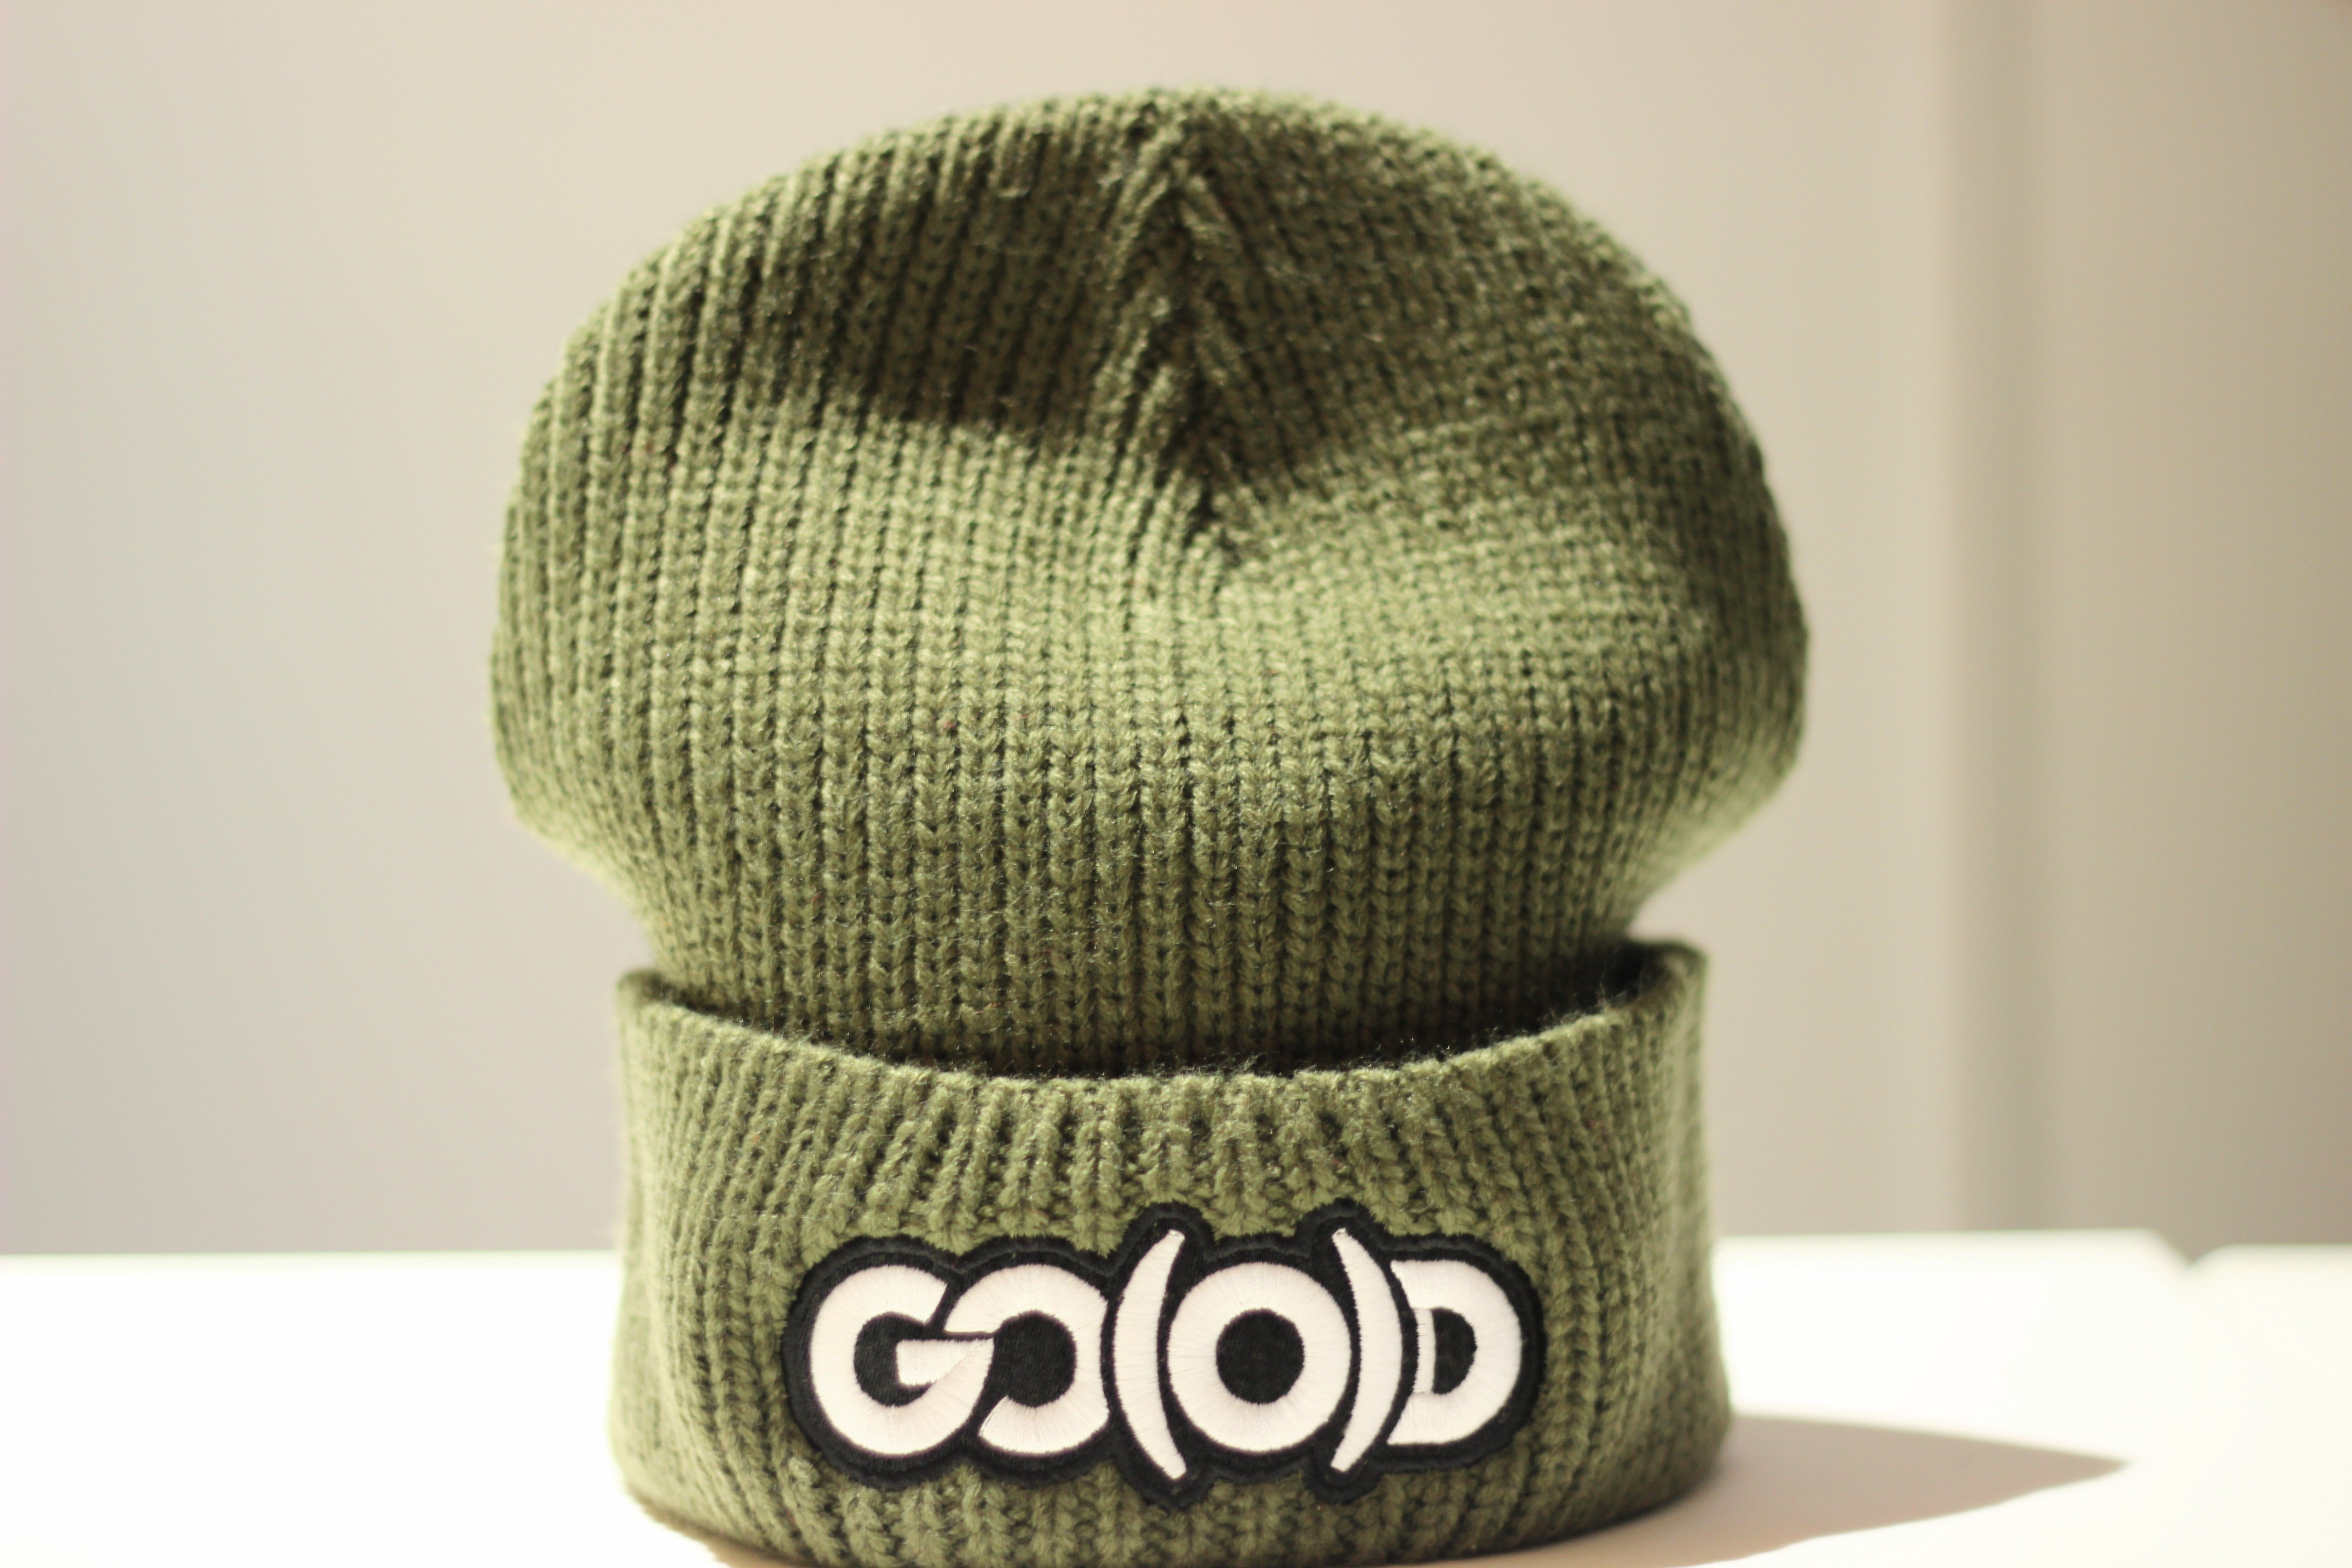 GO(O)D Heavyweight Beanie-military green 00183